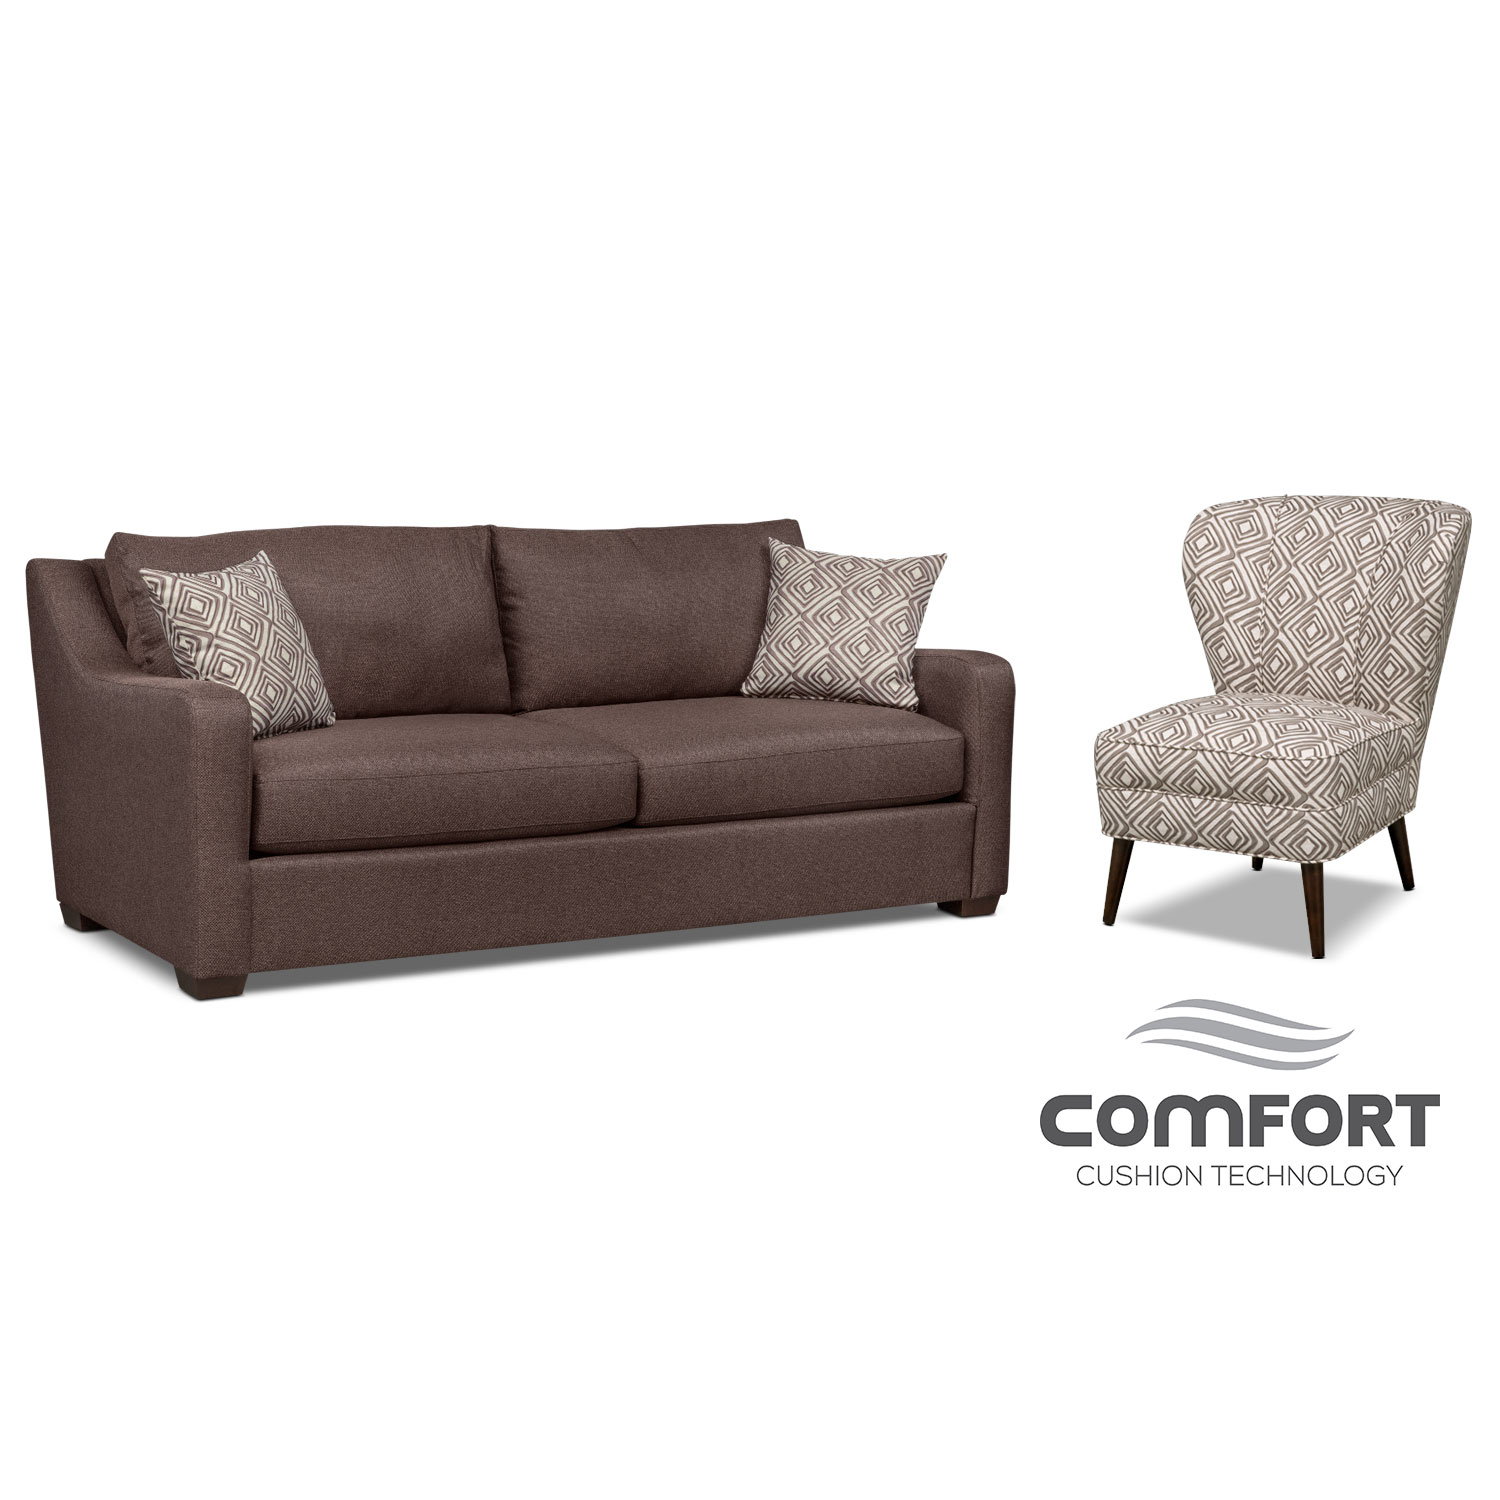 Jules Comfort Sofa and Accent Chair Set - Brown